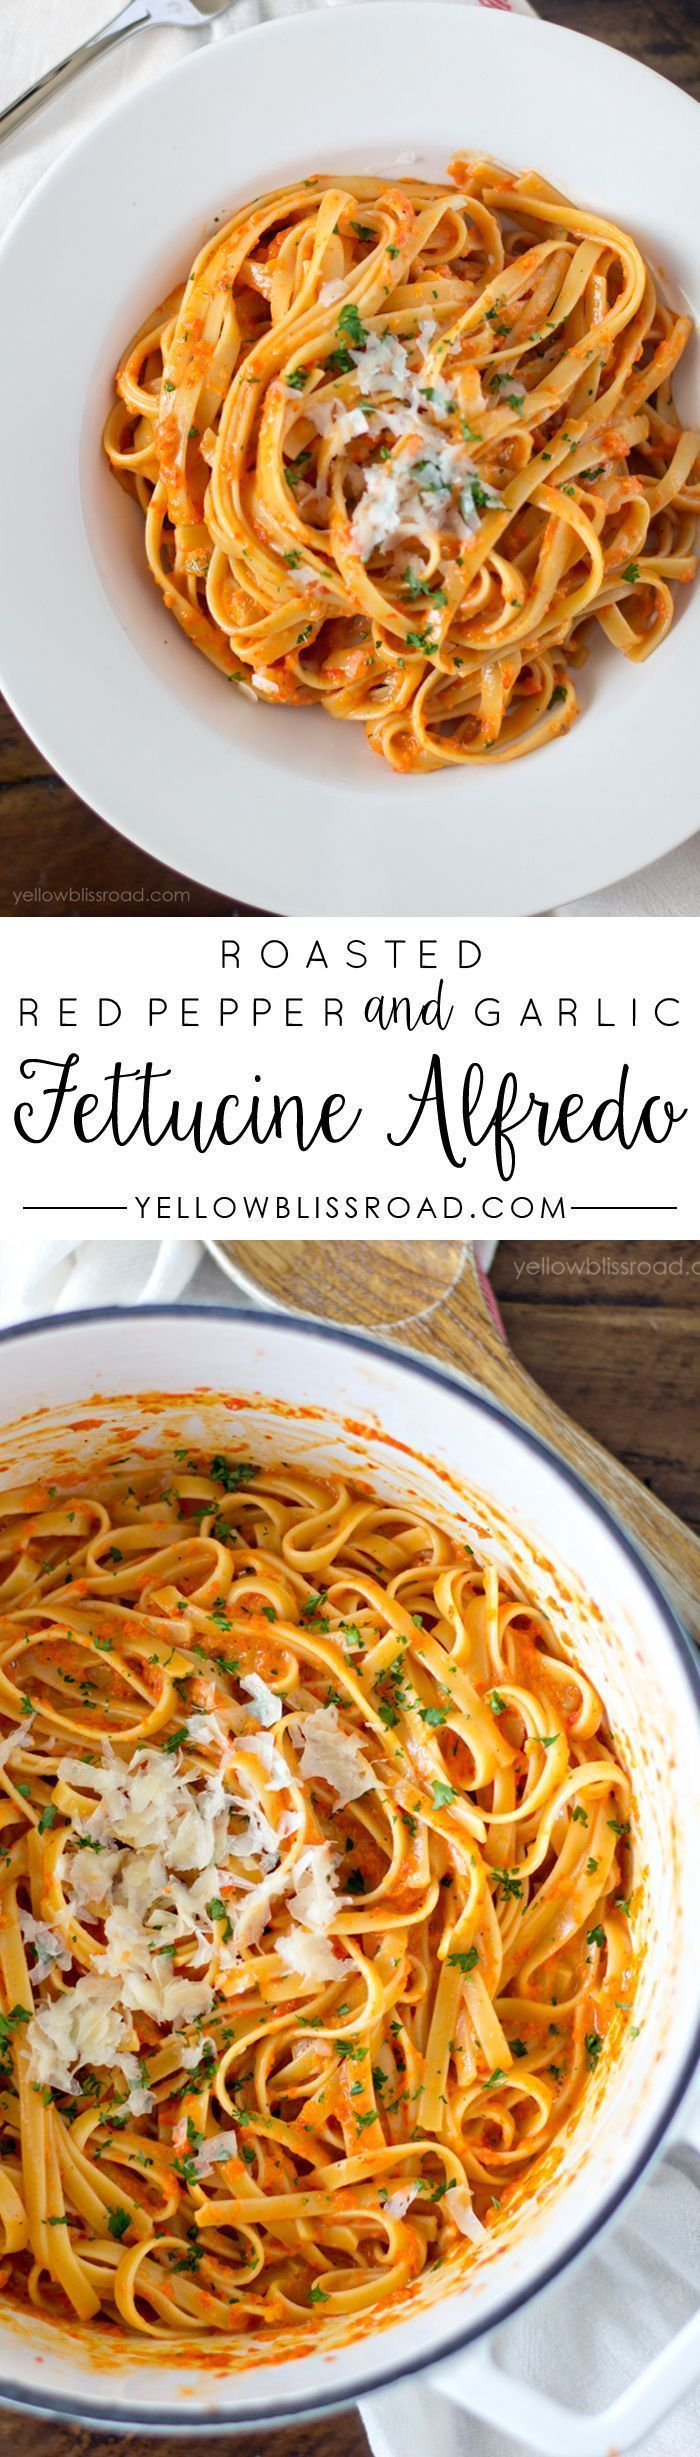 Roasted Red Pepper and Garlic Fettuccine Alfredo. Yummy and Easy dinner recipe that will please a crowd.